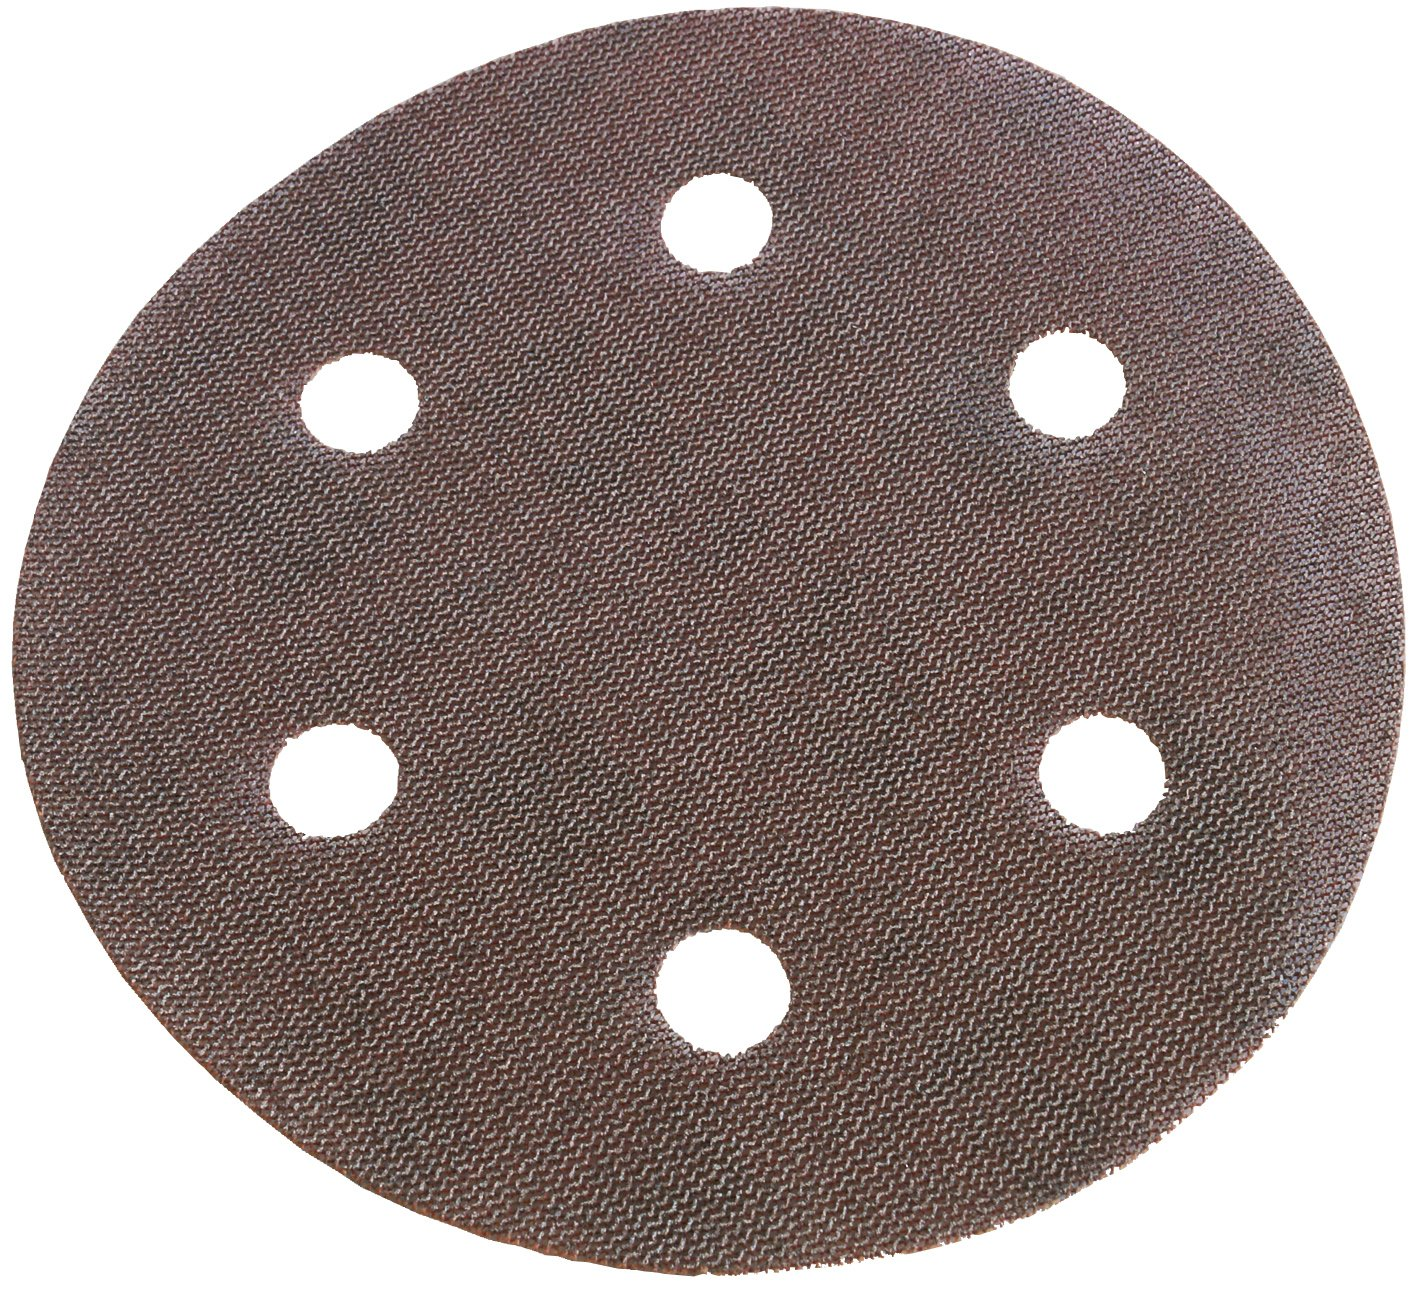 "CS Unitec 37644 9"" Sandpaper, Velcro 6-Hole Punch, 80 Grit Normal Corundum, (Pack of 25)"